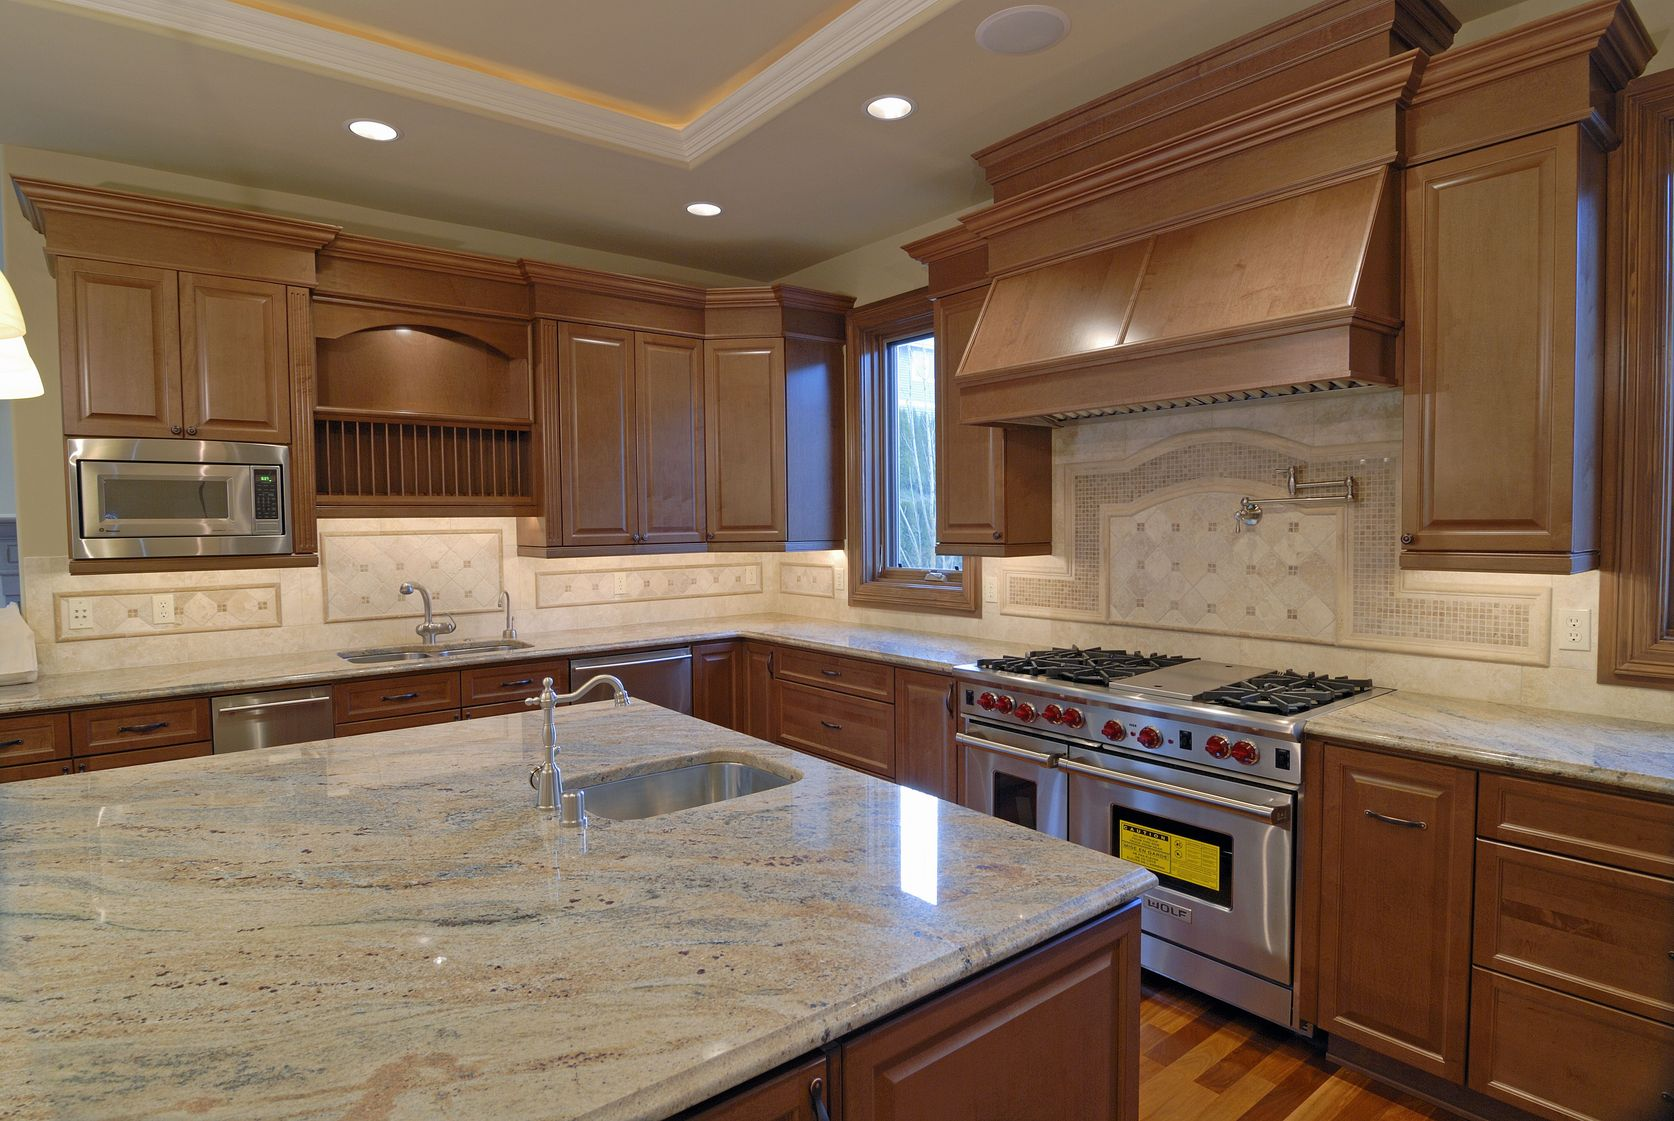 Kitchen Remodeling Tips How To Design A Kitchen With Marble Countertops A